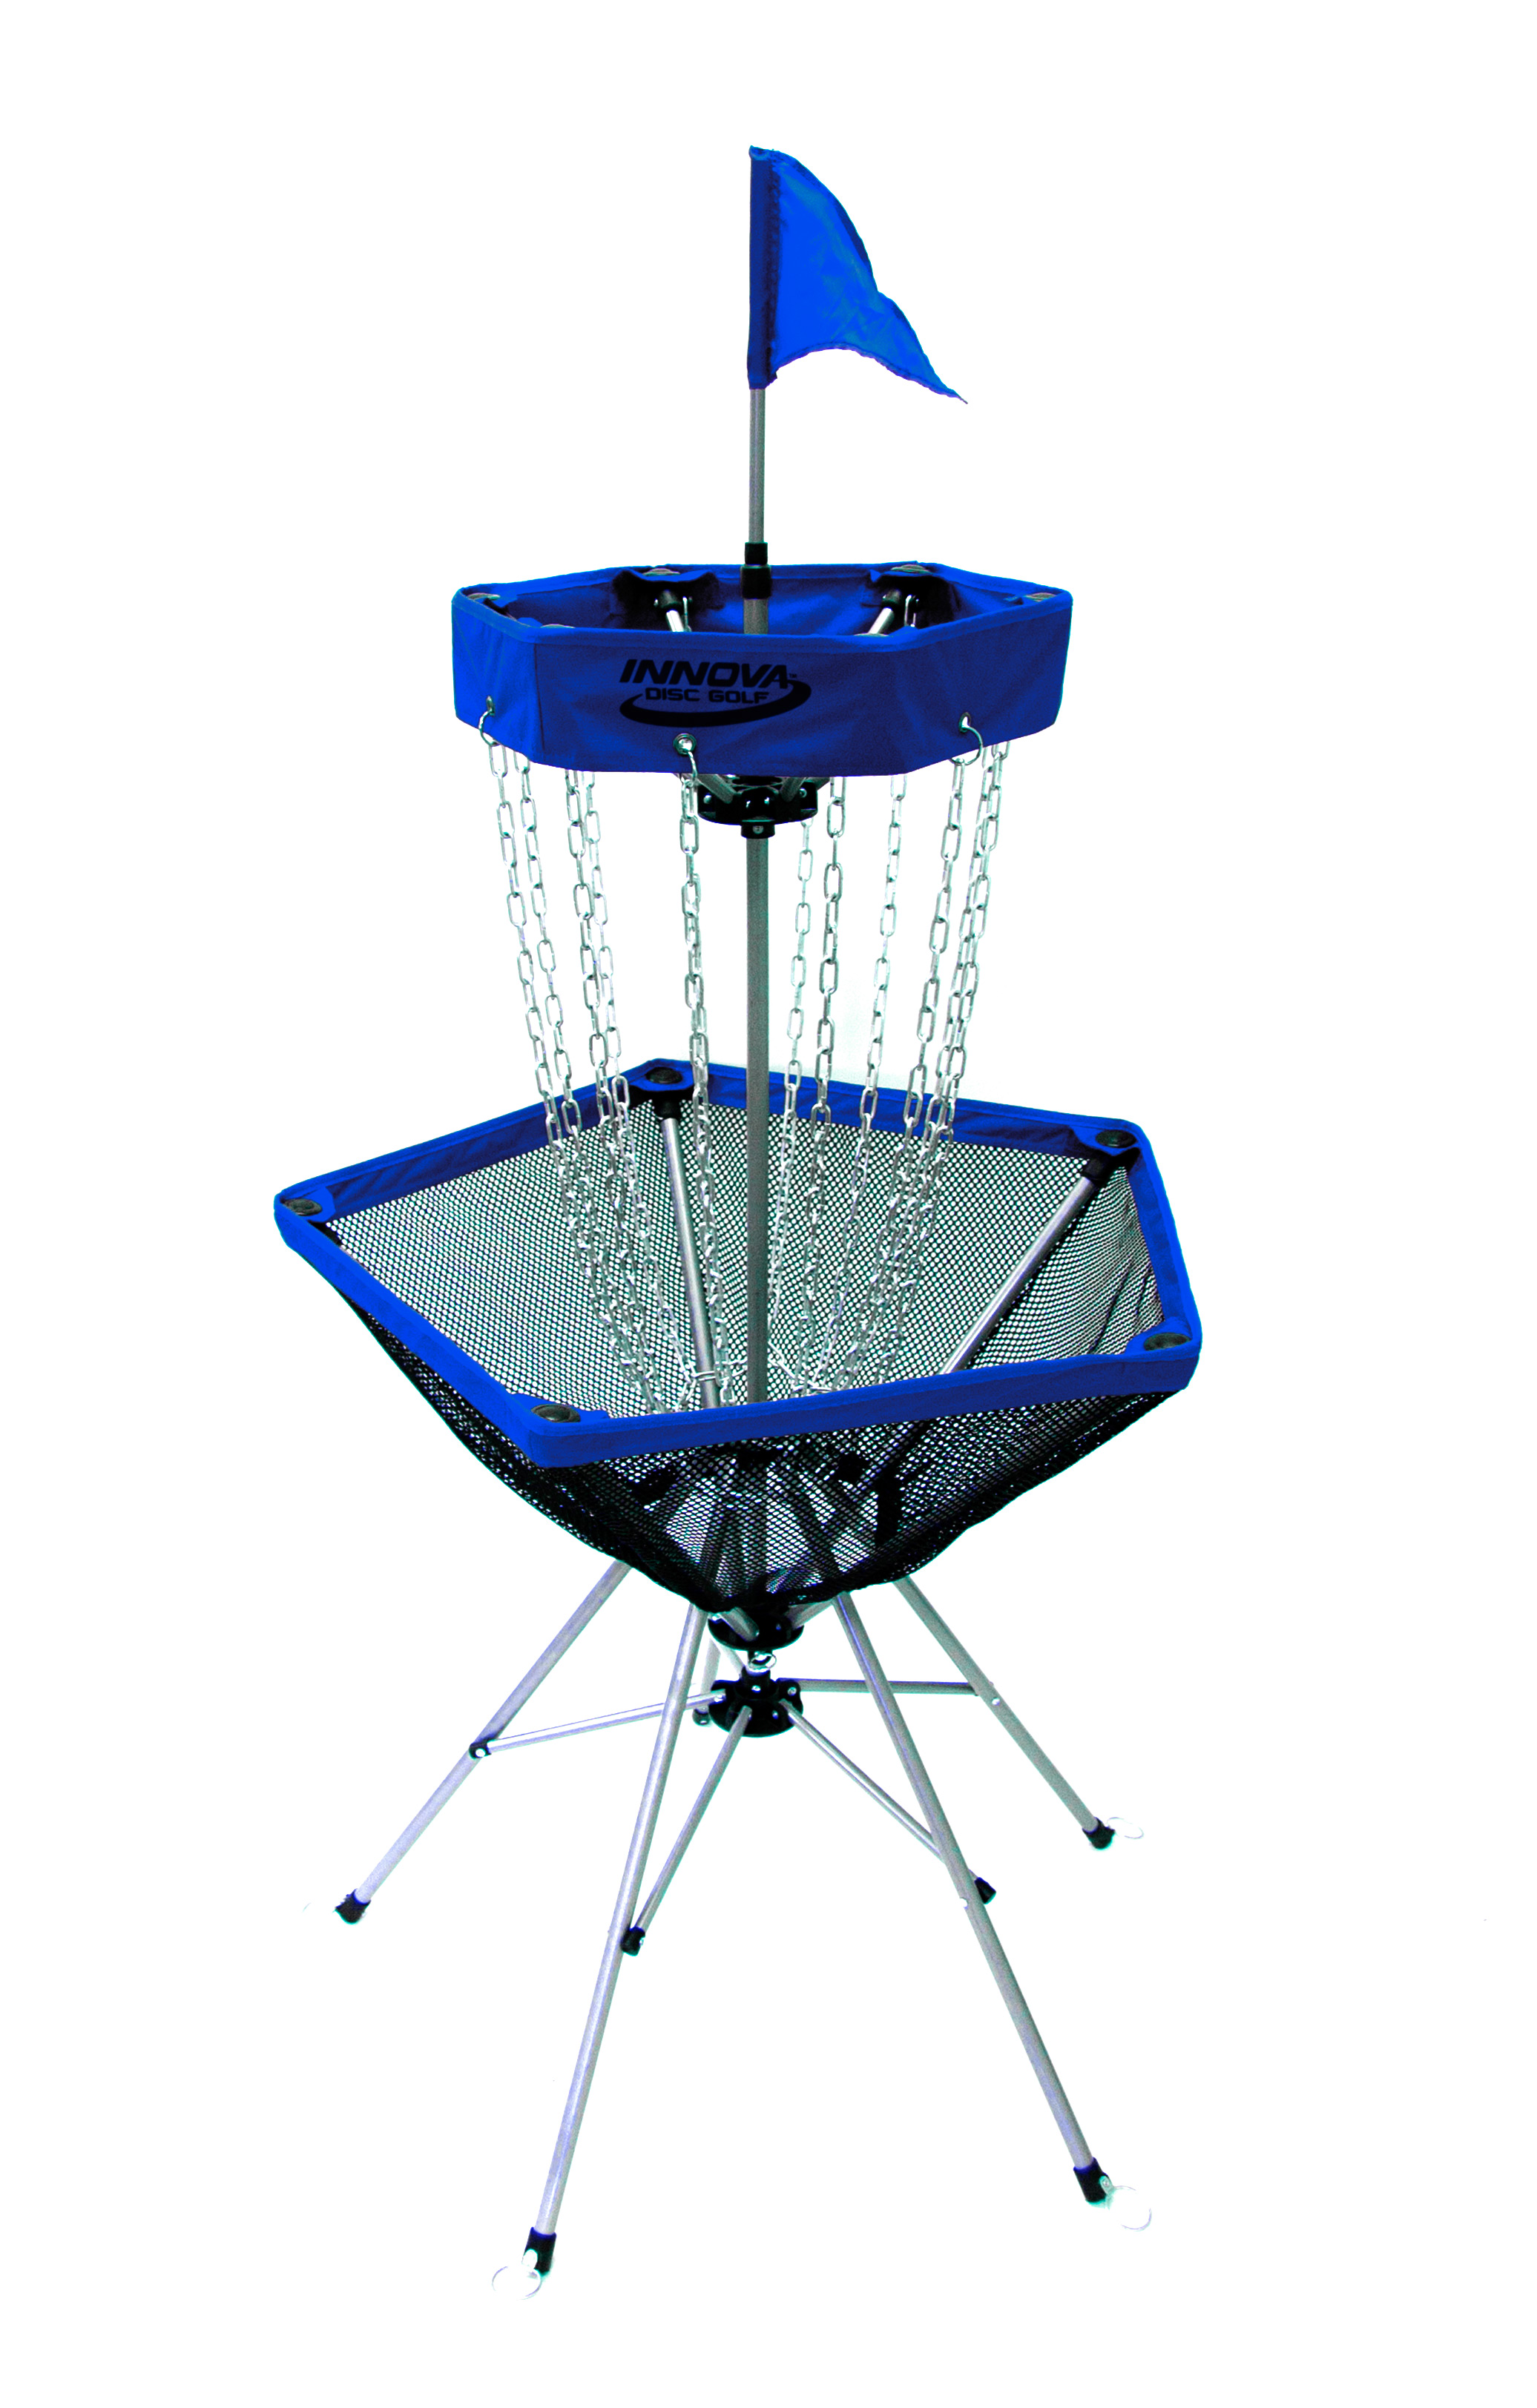 Innova Disc Golf Discatcher Traveler Target by Innova Champion Discs